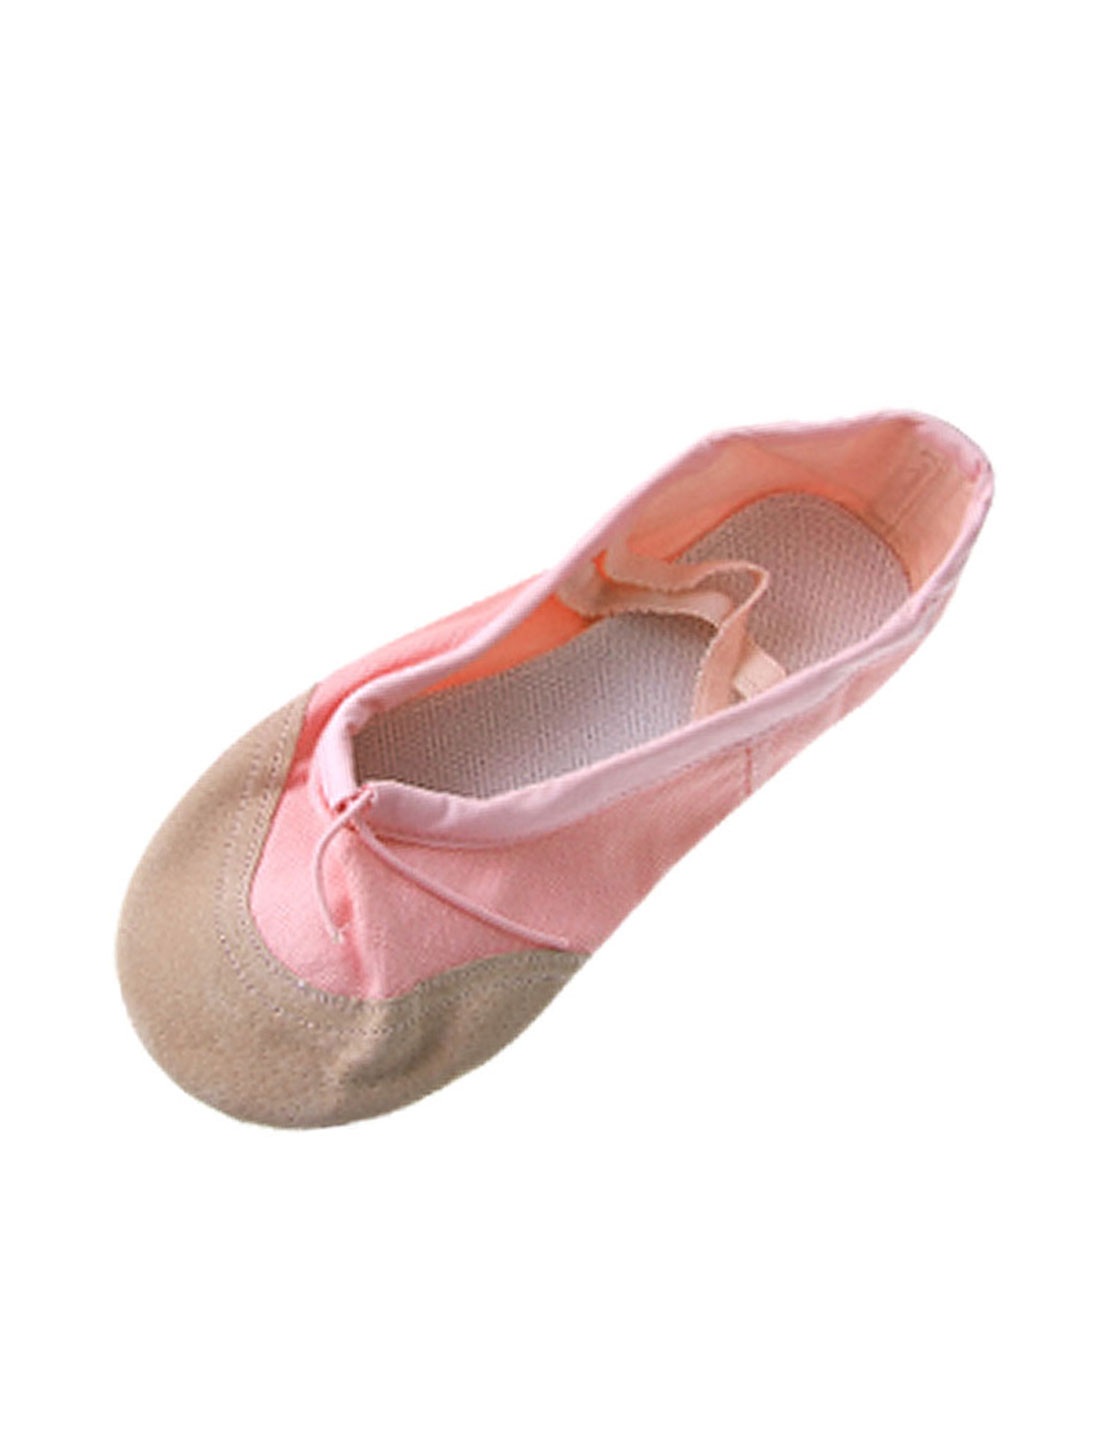 Gymnastics Dancing Ballet Girls Pink Canvas Flat Shoes US Size 10